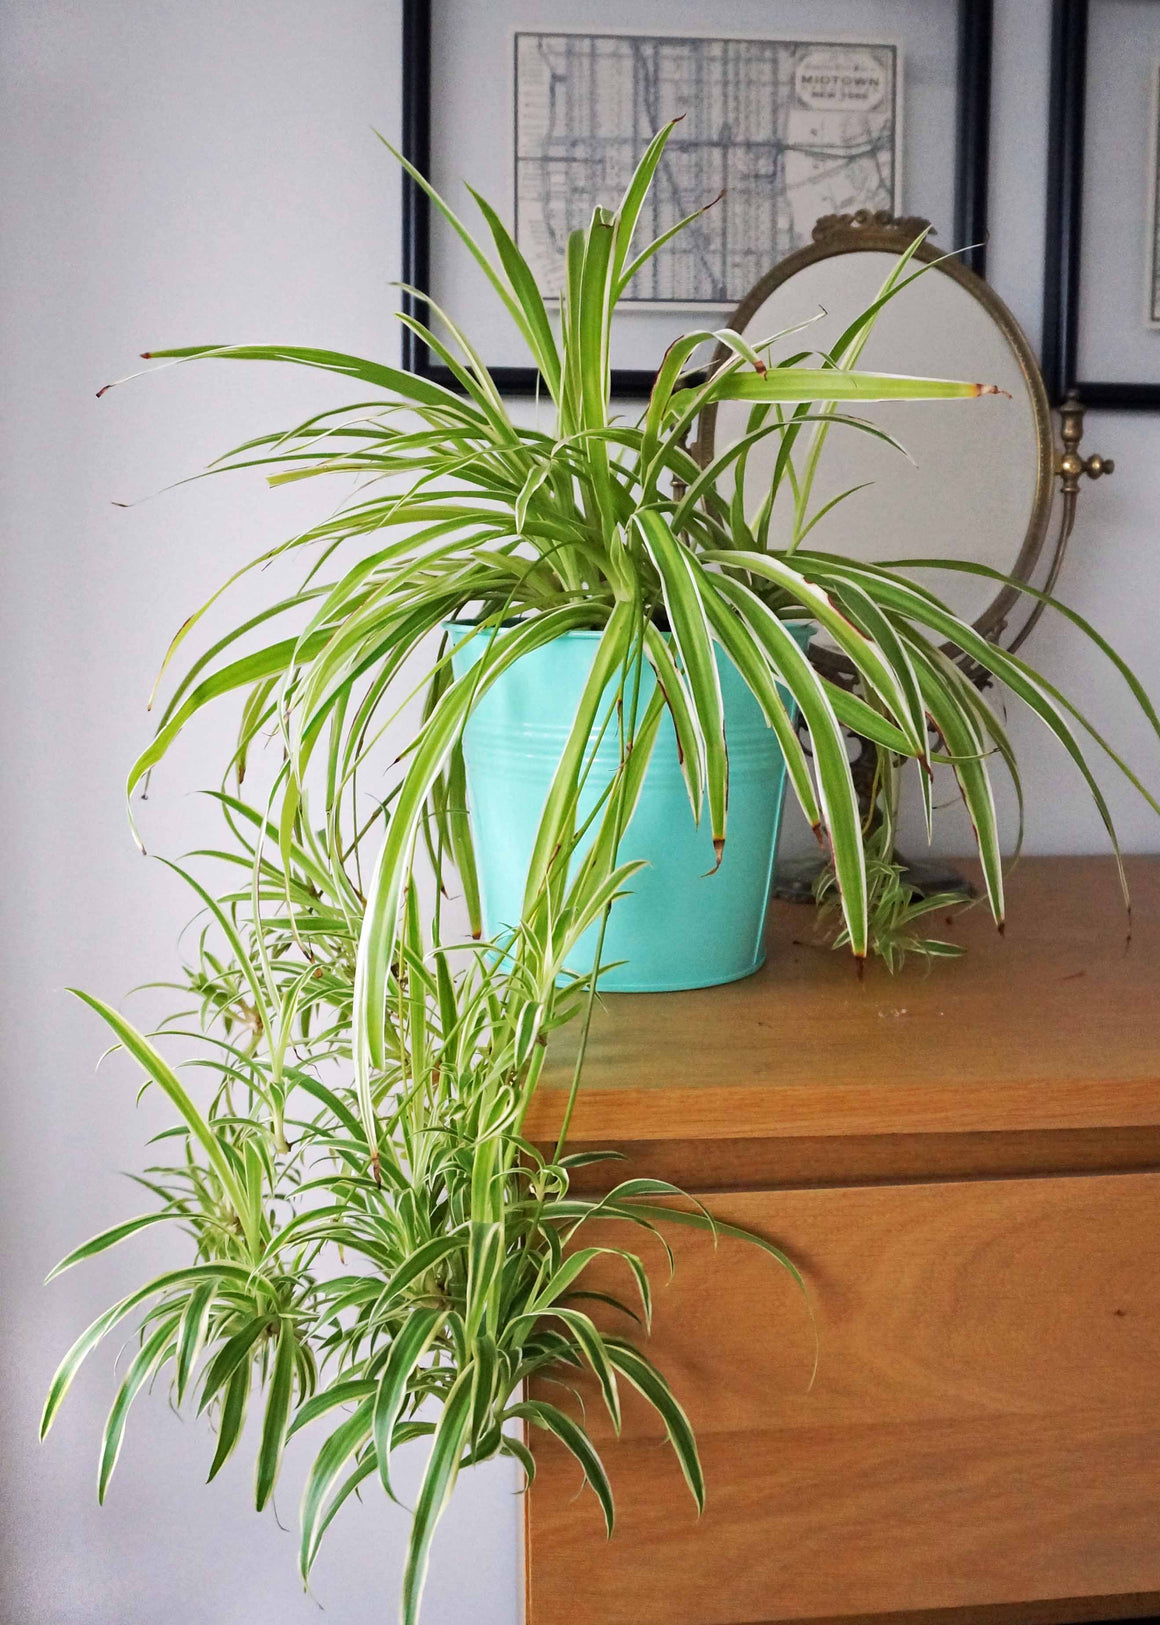 Home Grown Air Purifying House Spider Plant - Ada's Attic Vintage -